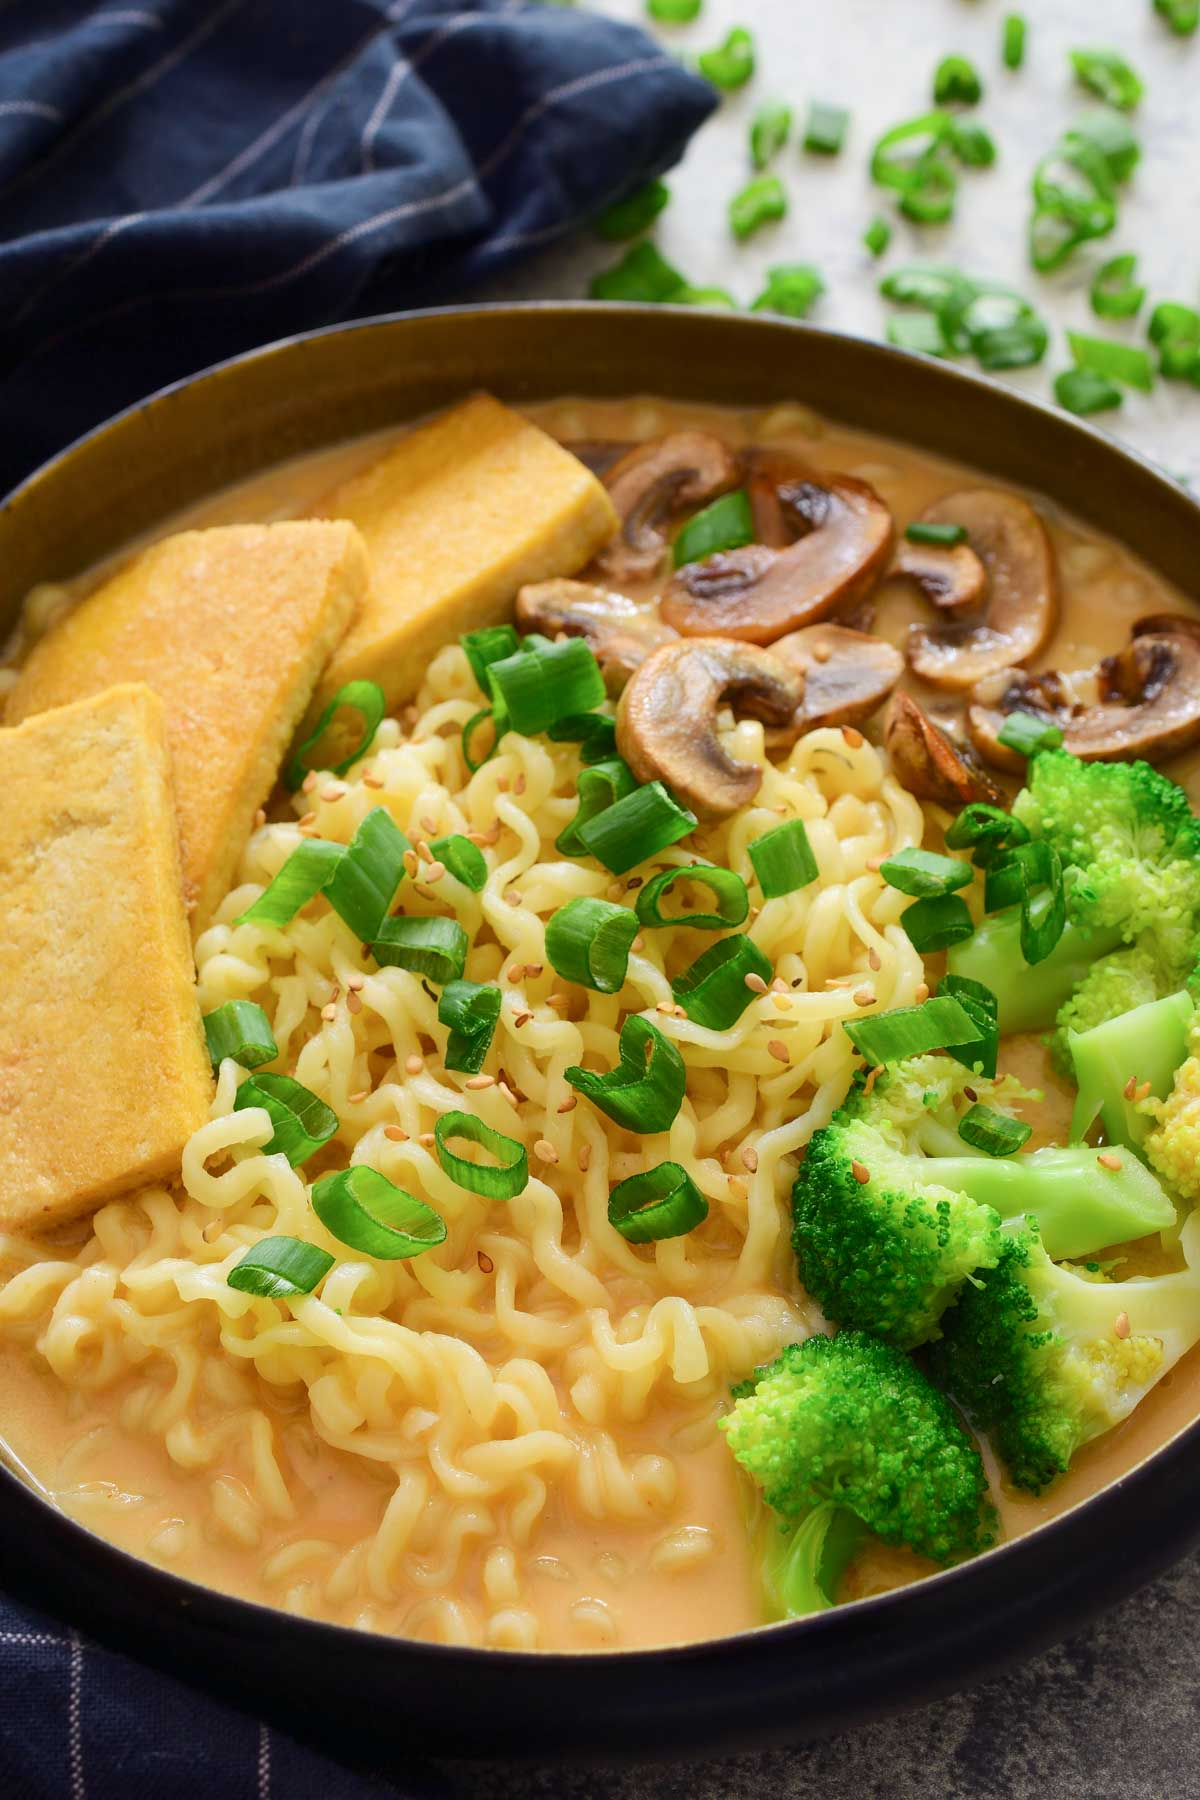 A black bowl filled with ramen, broccoli, tofu and mushrooms in a creamy vegan sesame broth. Garnished with green onions and sesame seeds.